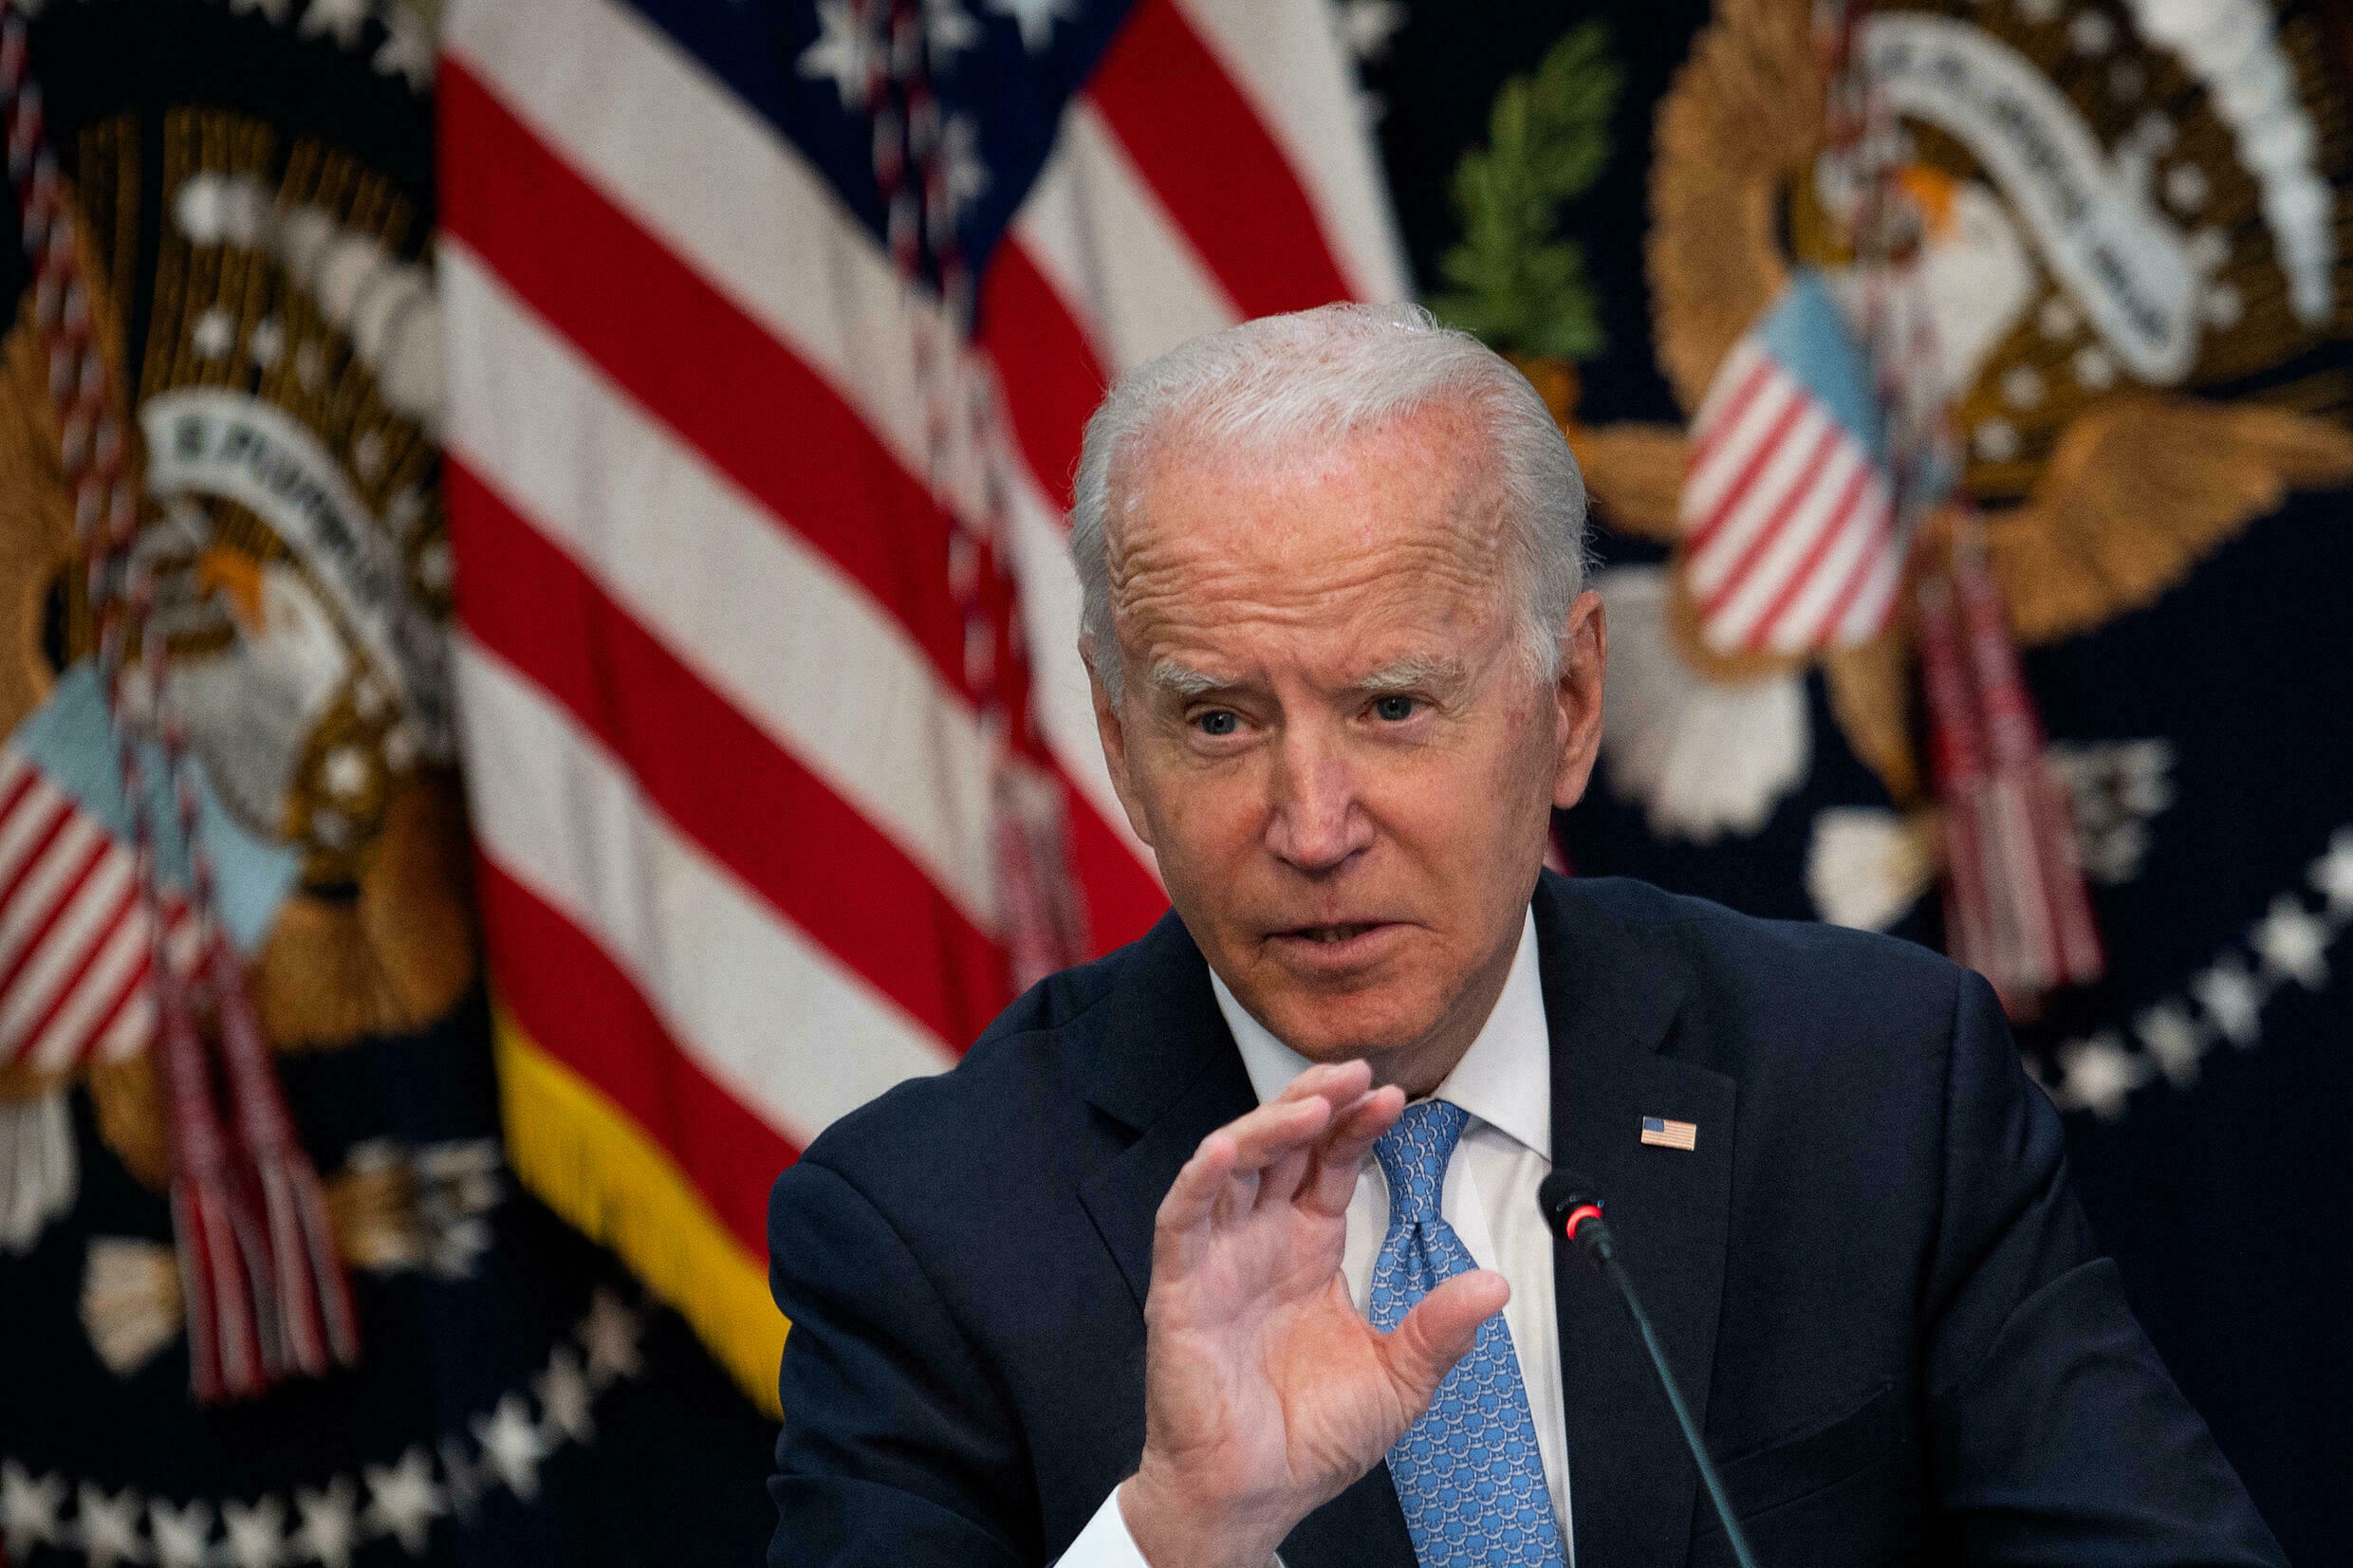 US President Joe Biden is set to announce a new alliance with Australia and Britain